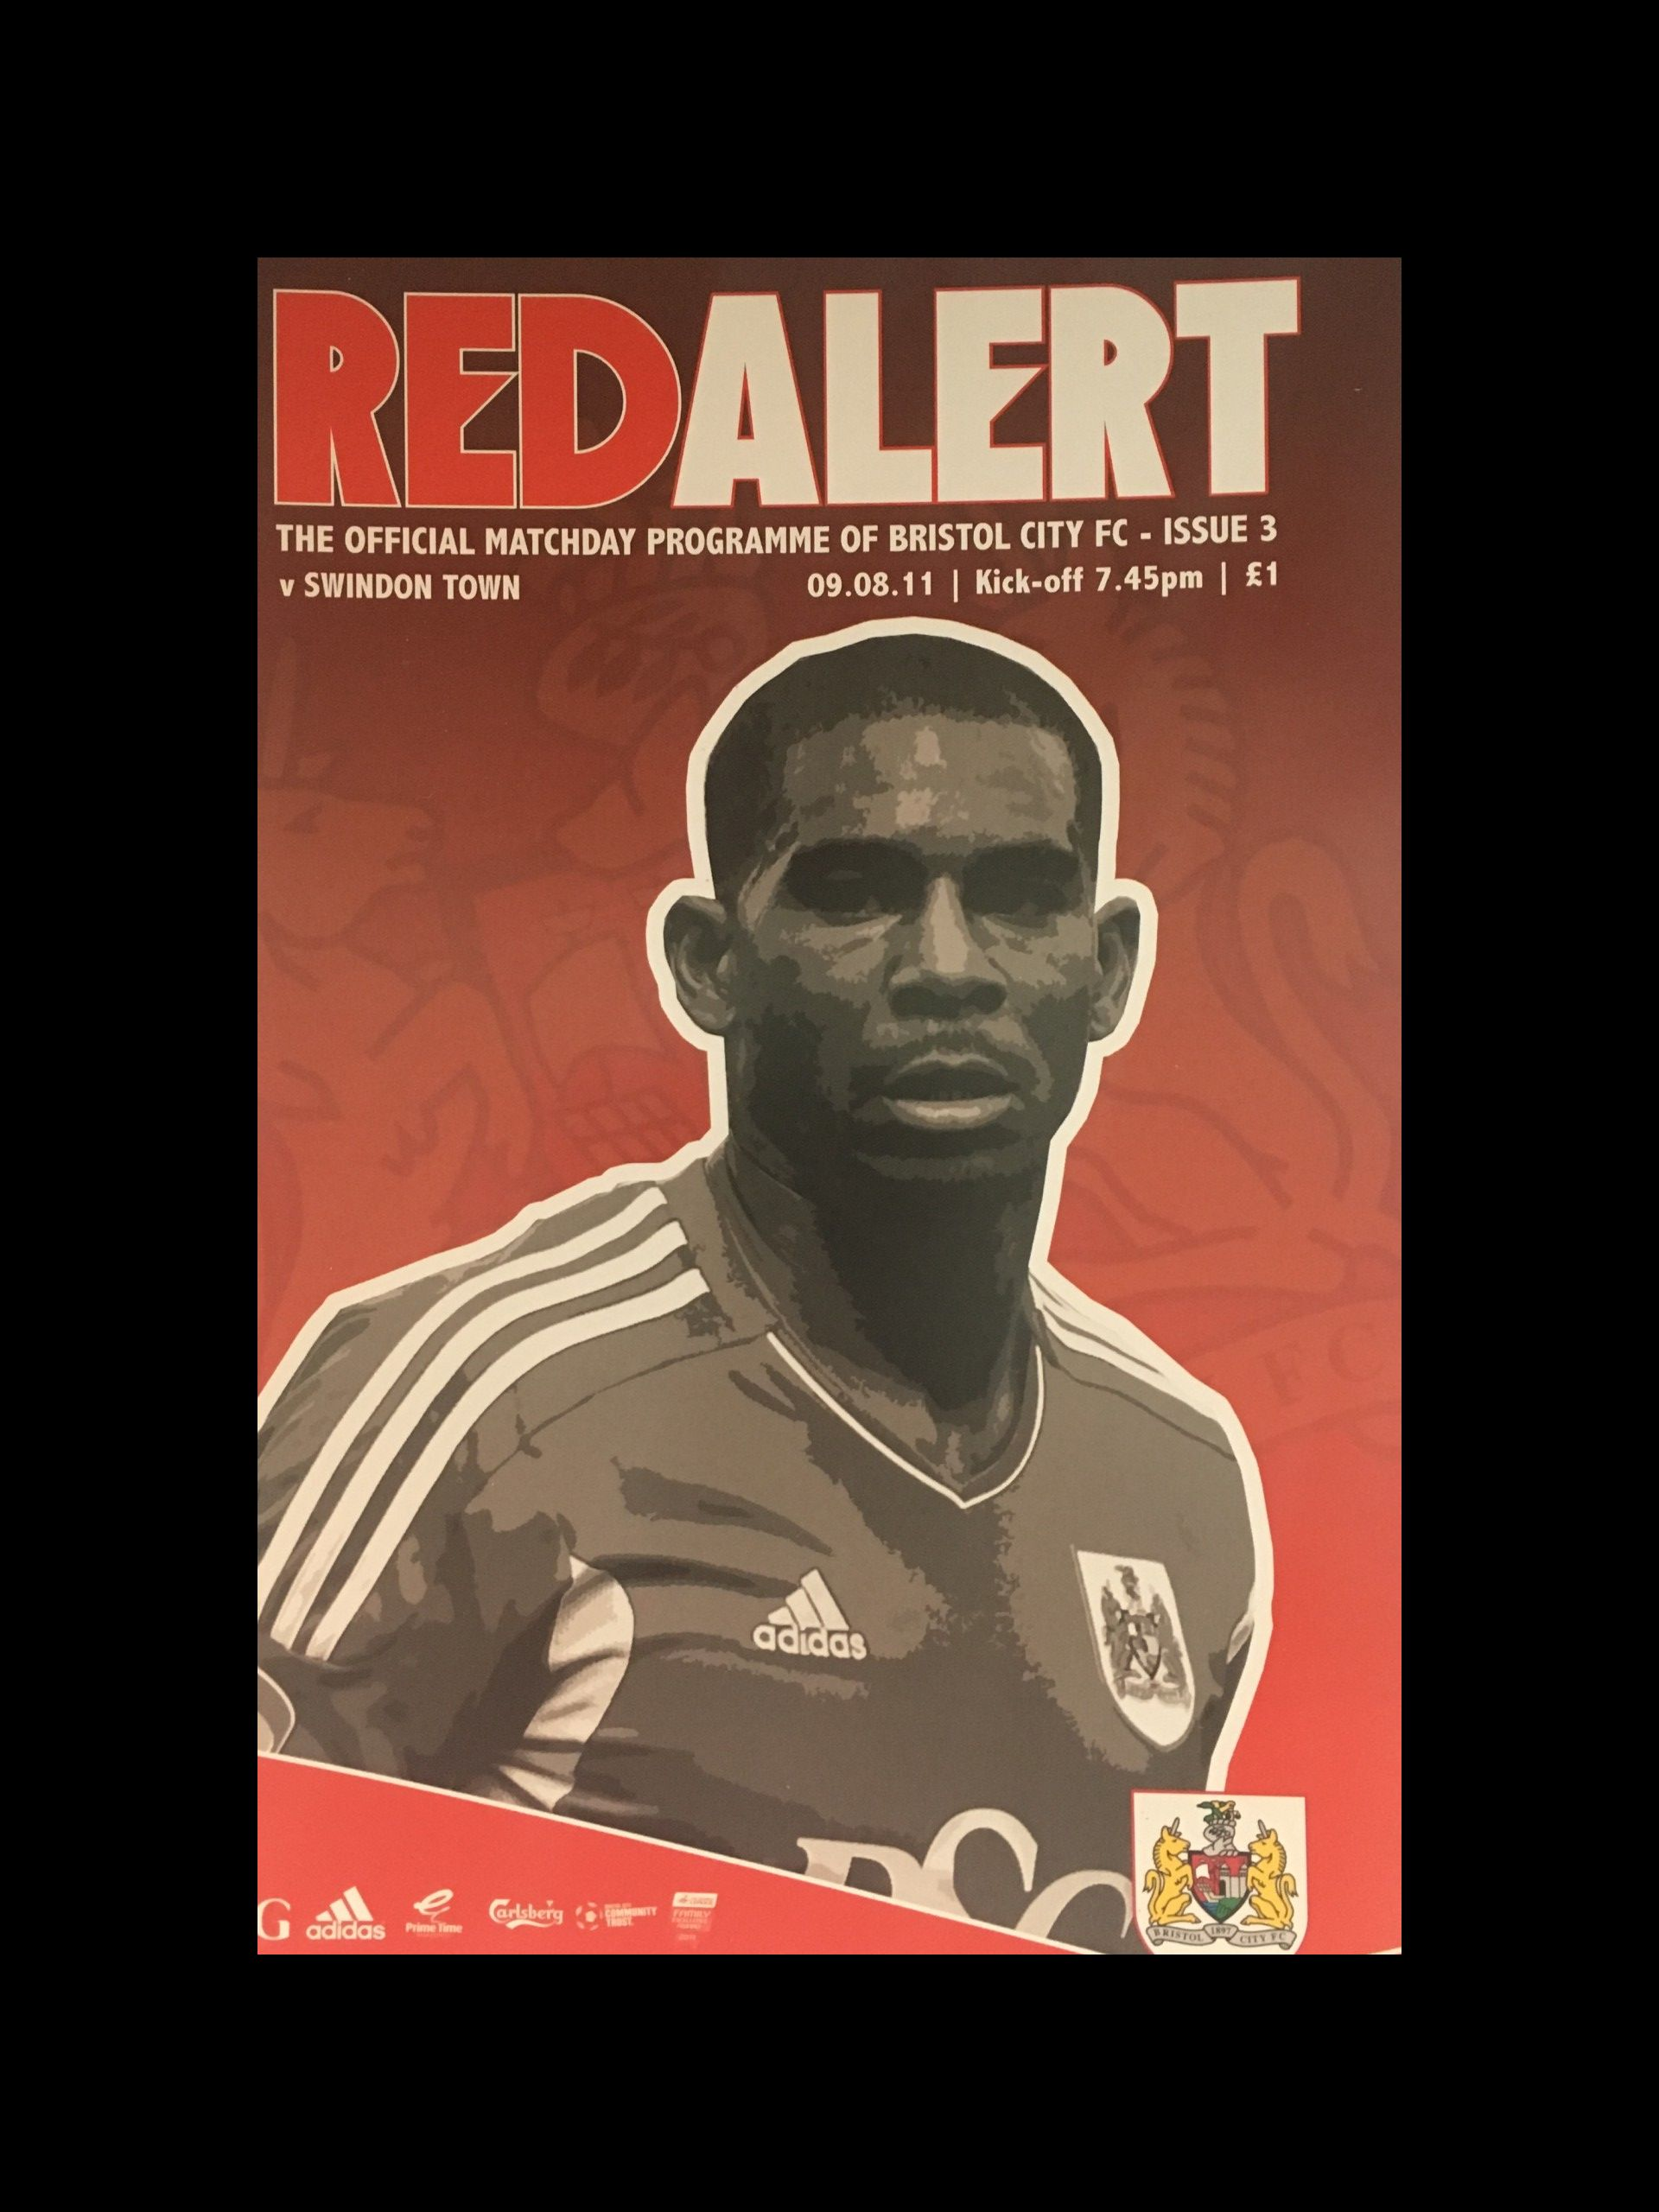 Bristol City v Swindon Town 09-08-2011 Programme